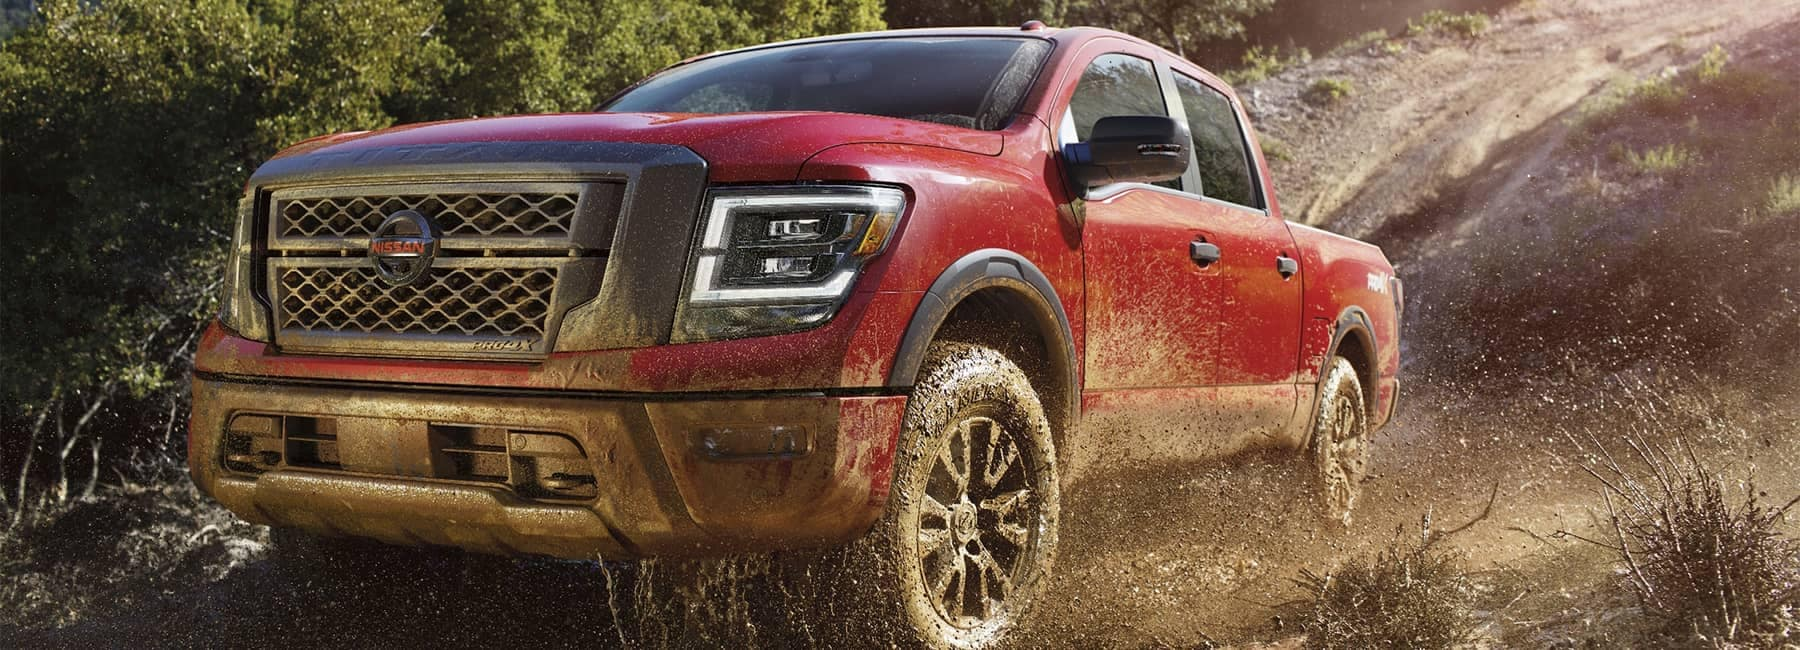 A 2021 Red Nissan Titan truck off roading in dirt